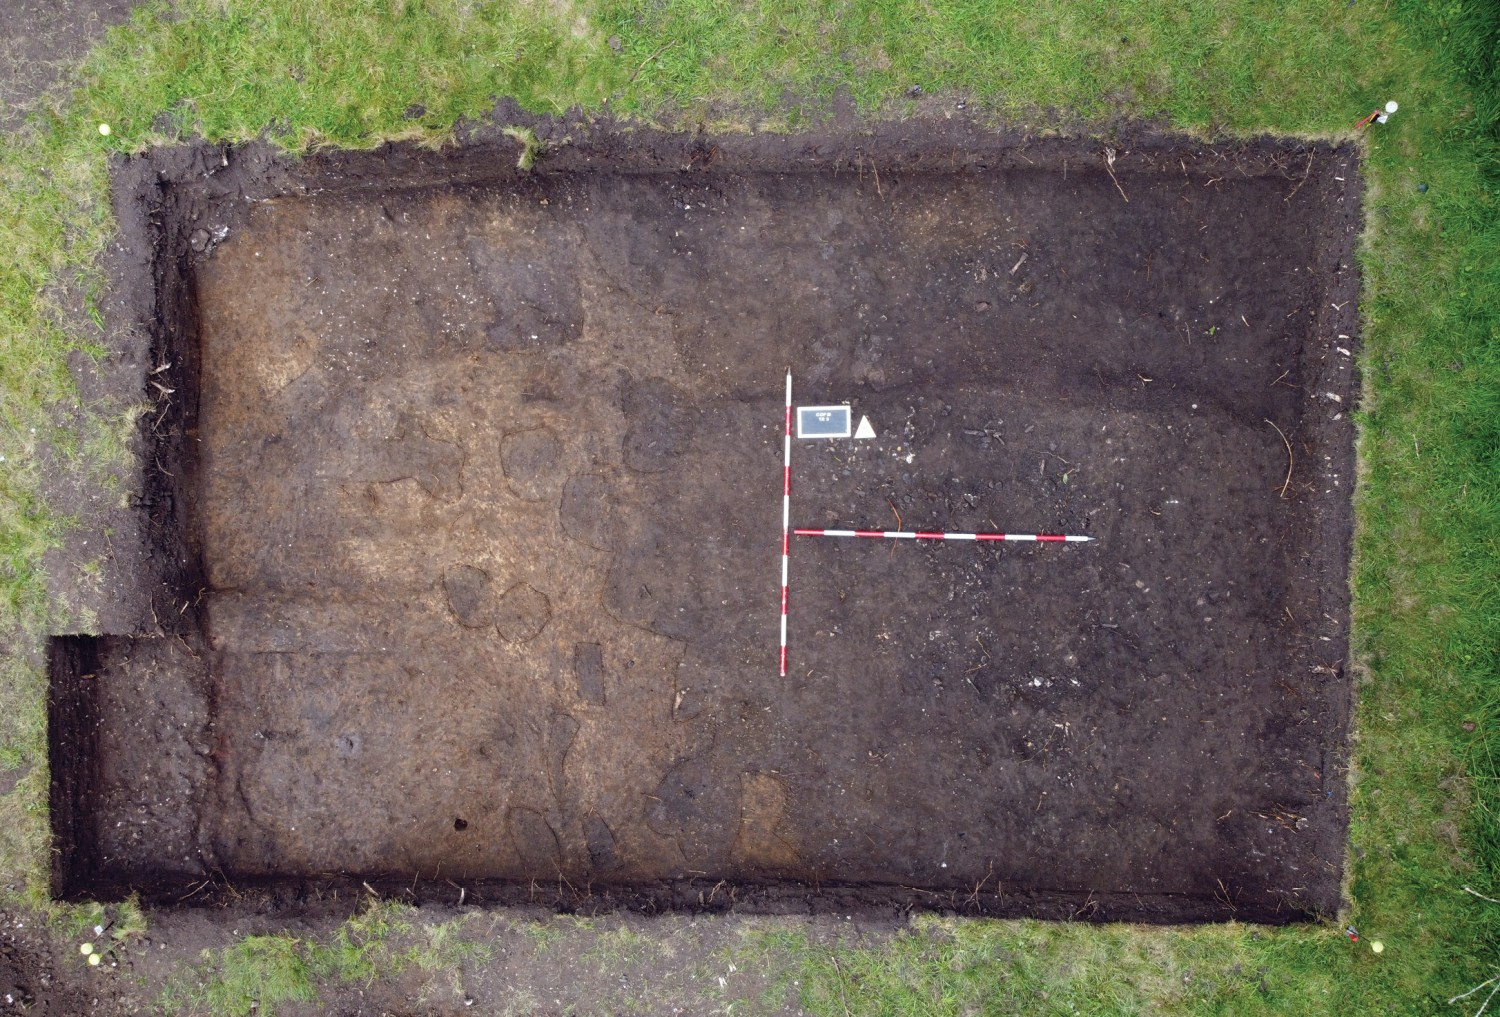 above An extensive midden spread, represented by dark material strewn with fragments of animal bone, covers more than half of this trench. Post-holes cut into the yellow natural geology can be seen to its left.